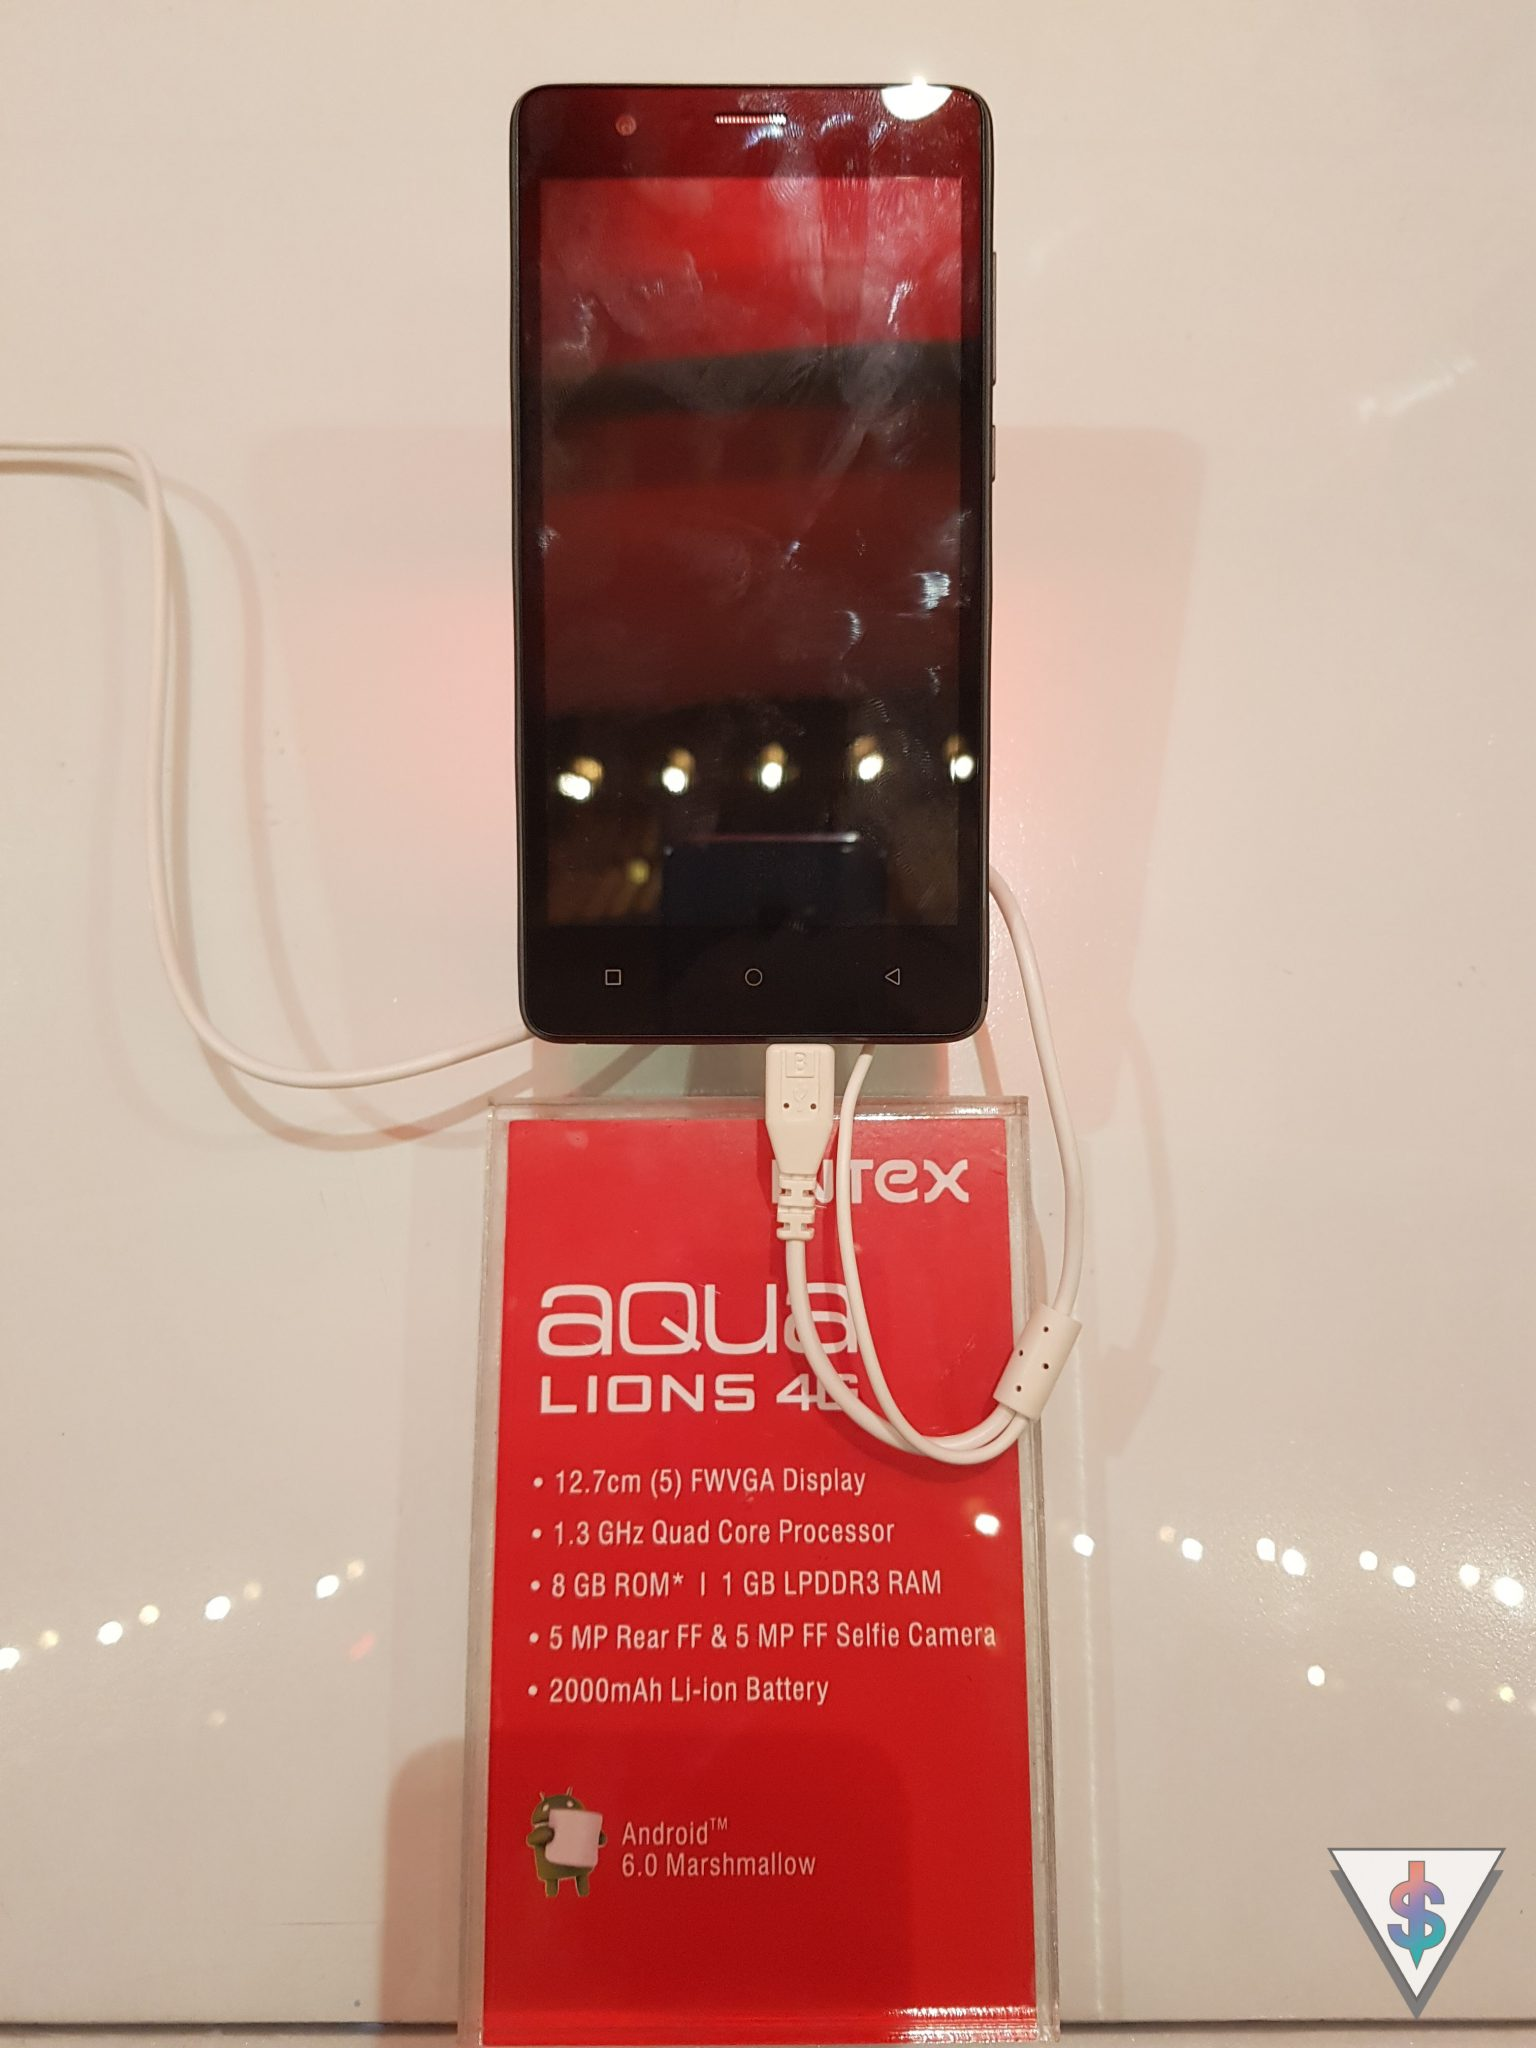 Intex AndroDollar 14 - Intex partners with Softlogic to unveil the Aqua A4, Aqua Lions 4G and more budget oriented devices in Sri Lanka